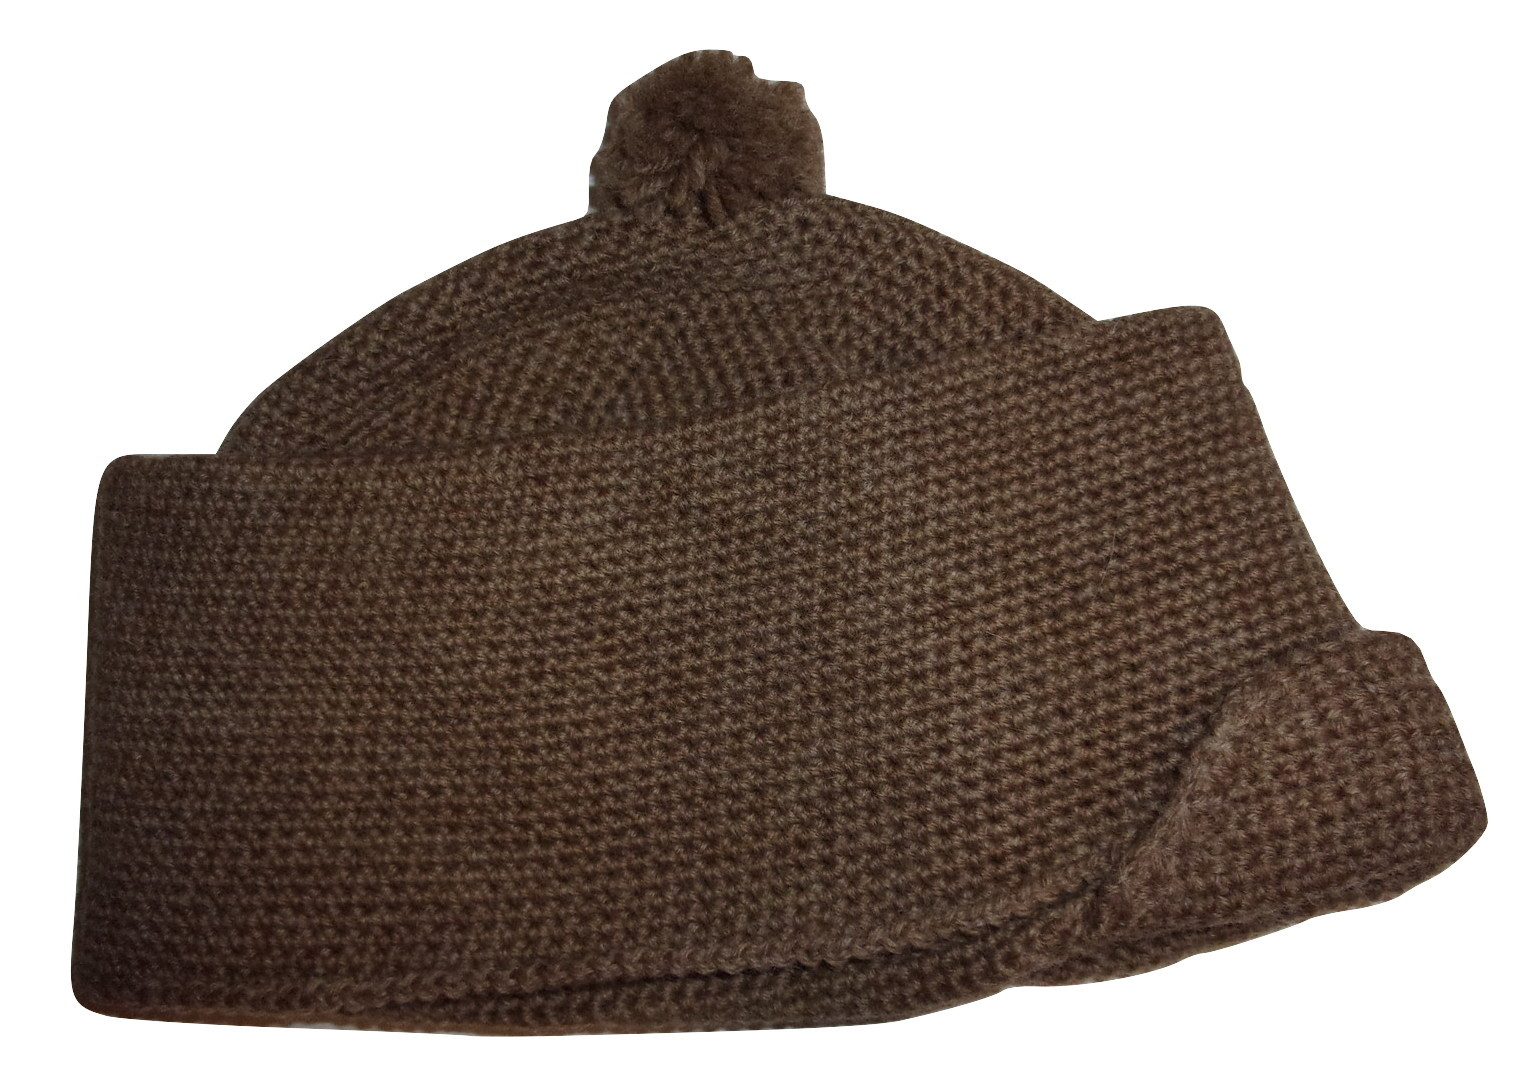 Primary image for WWI Great War Reproduction 1915 British Balaclava Cap, Wool, Khaki Color